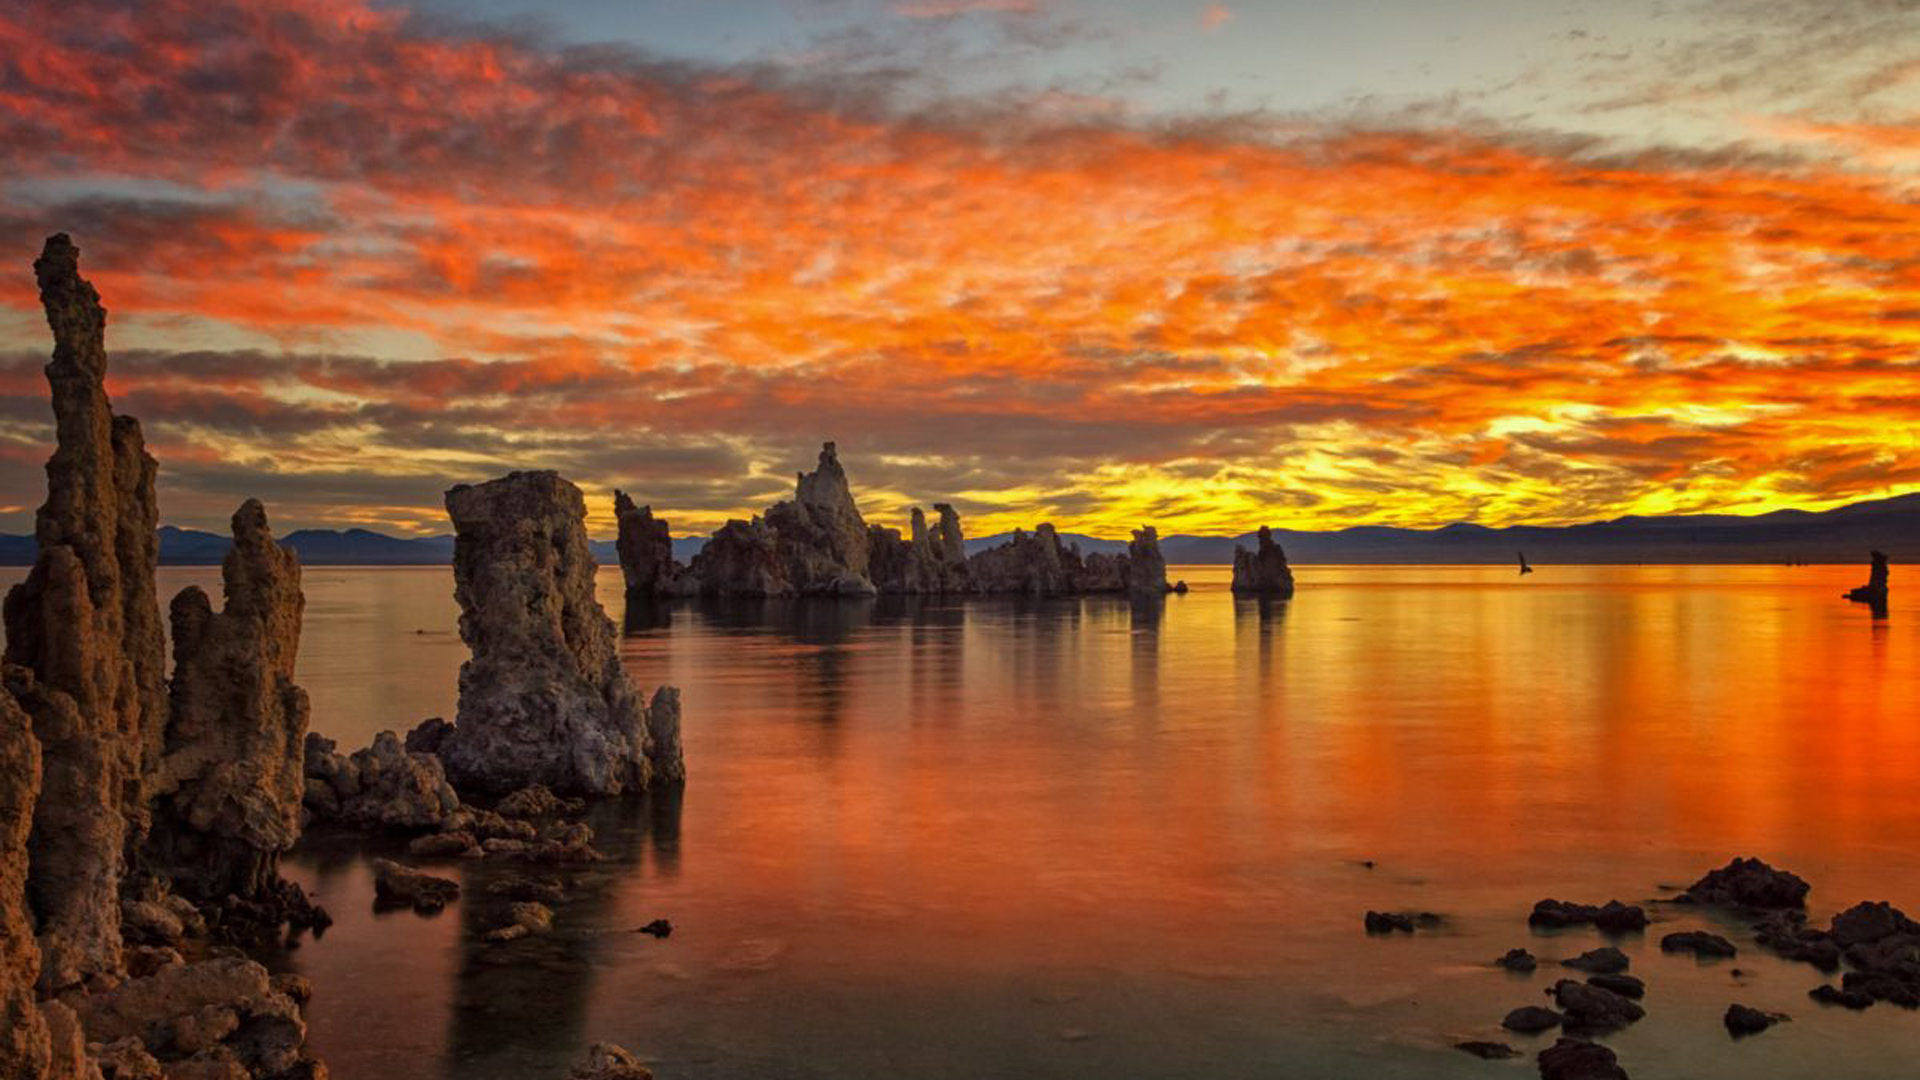 Amazing Wallpapers For Iphone 4 Sunset At Mono Lake South Tufa Karptesti Towers In Lake